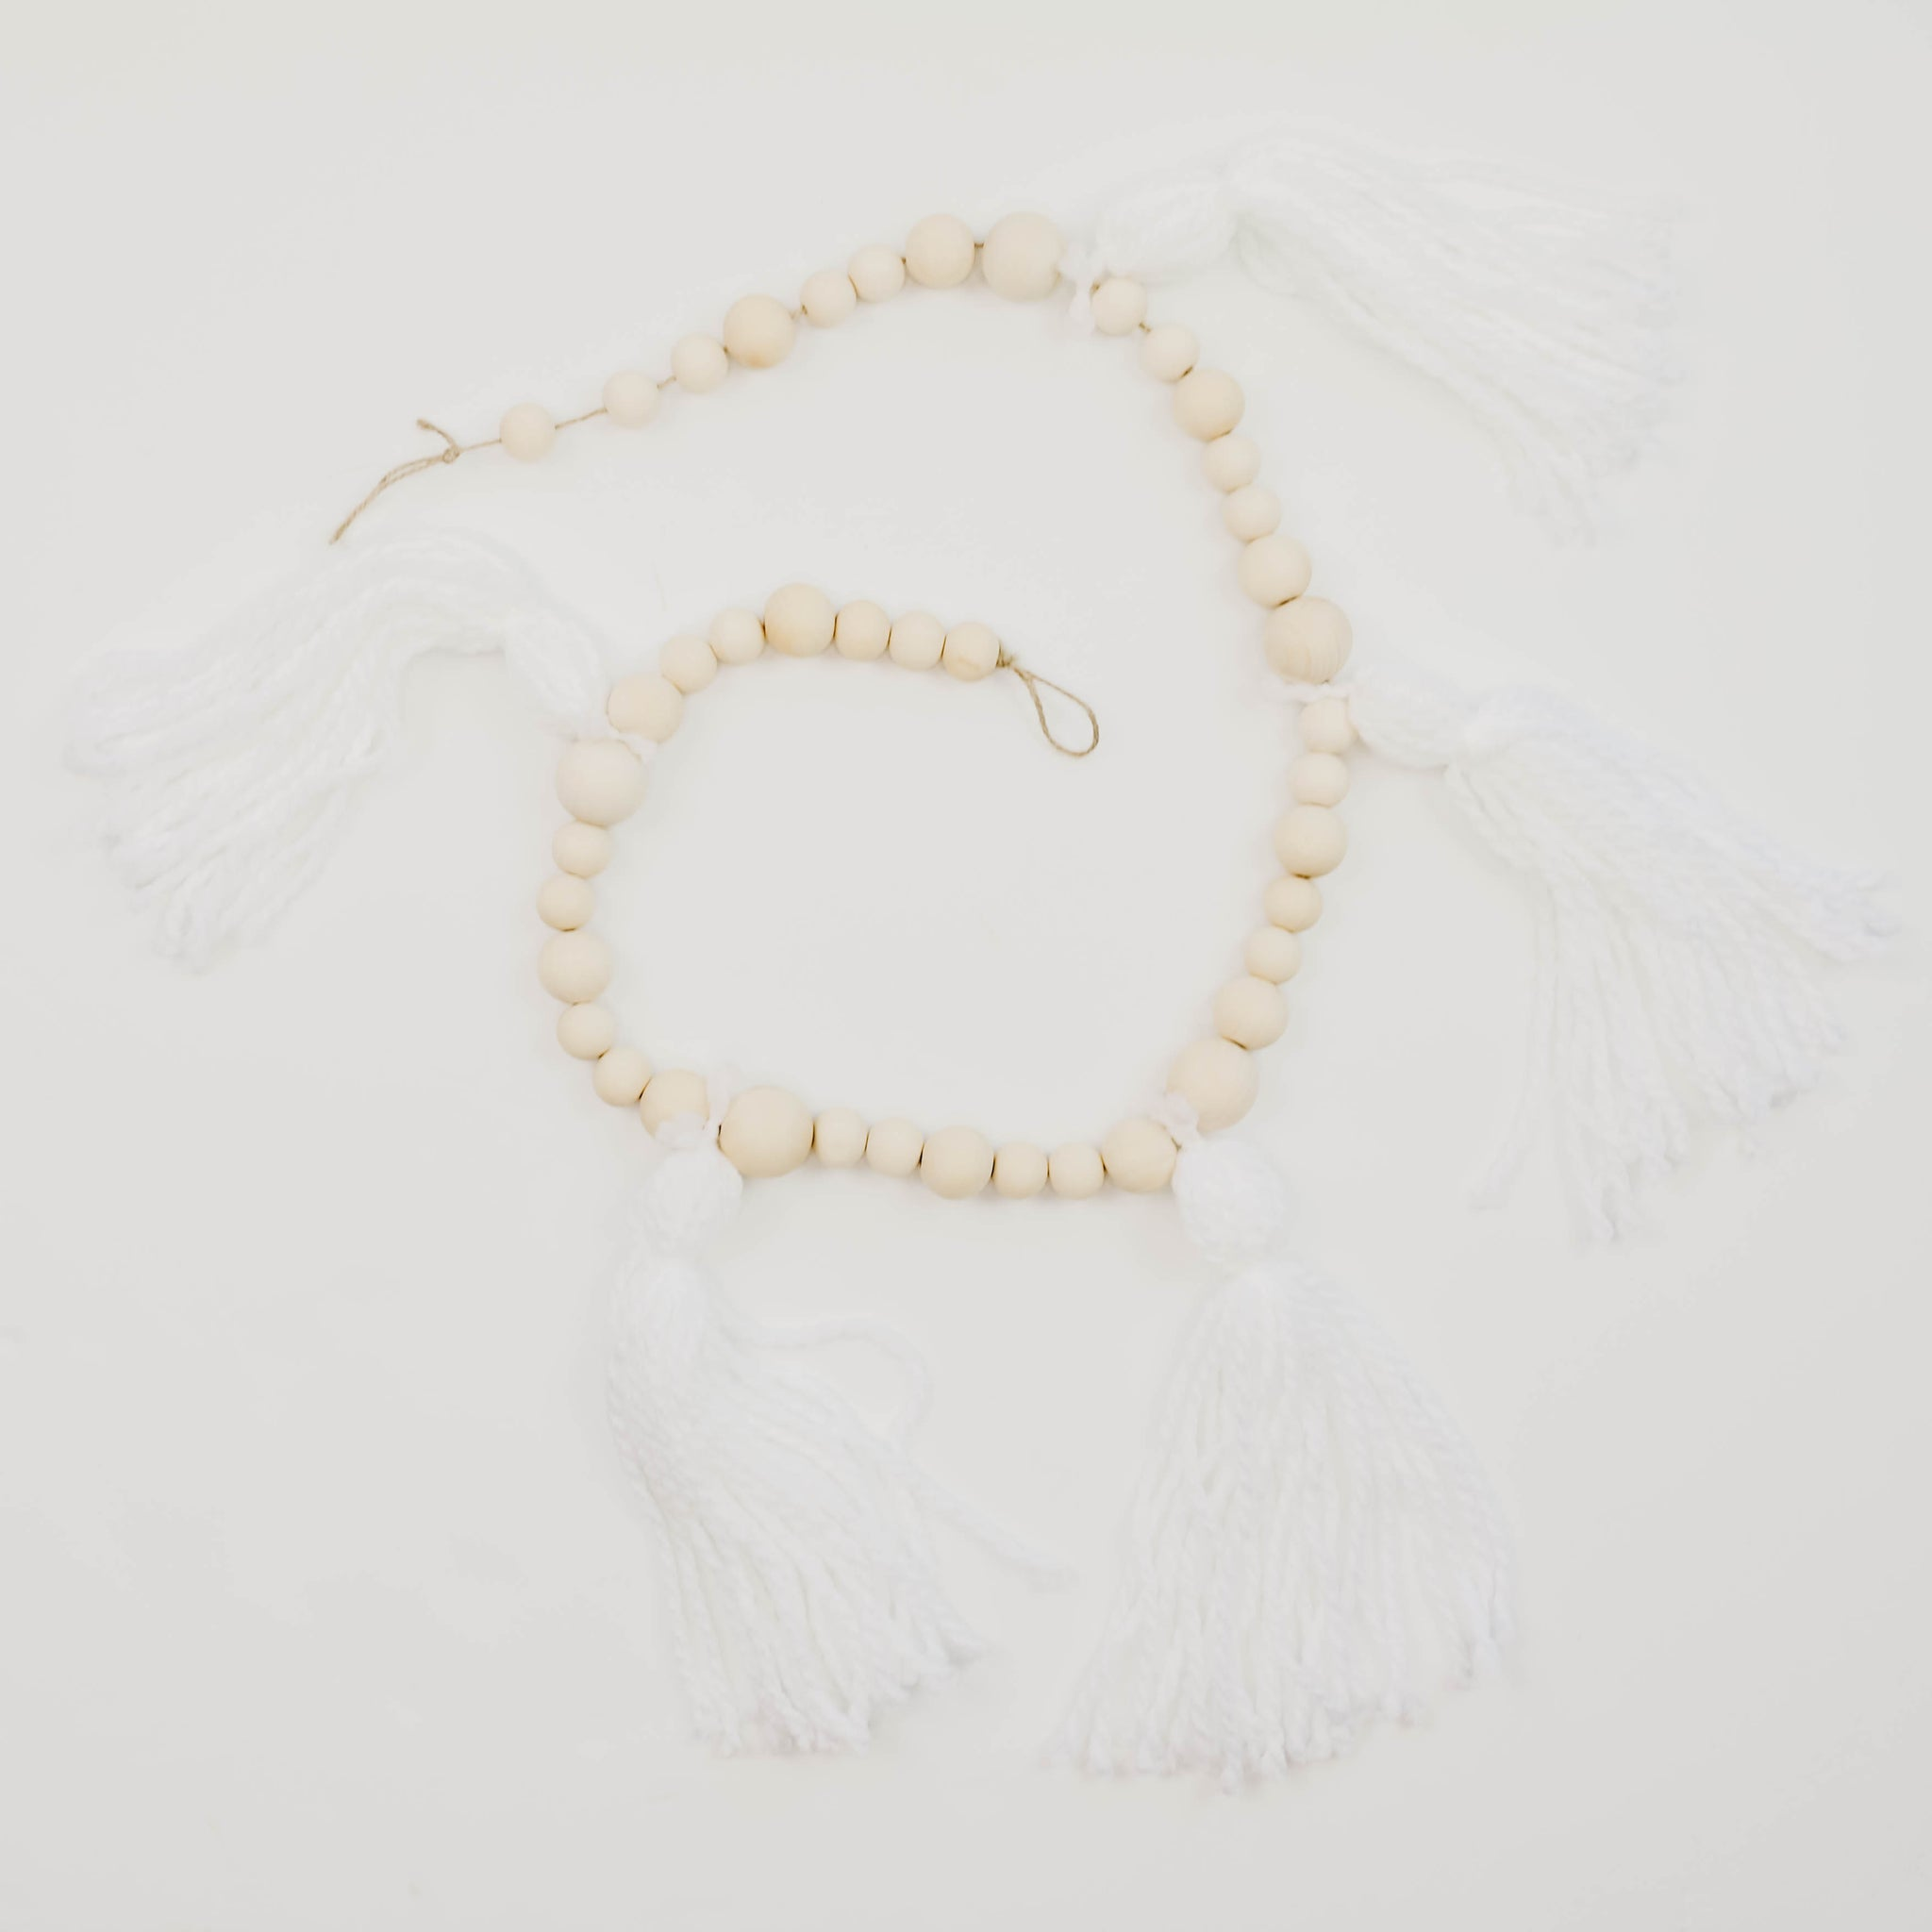 Beaded Wooden Tassel Garland